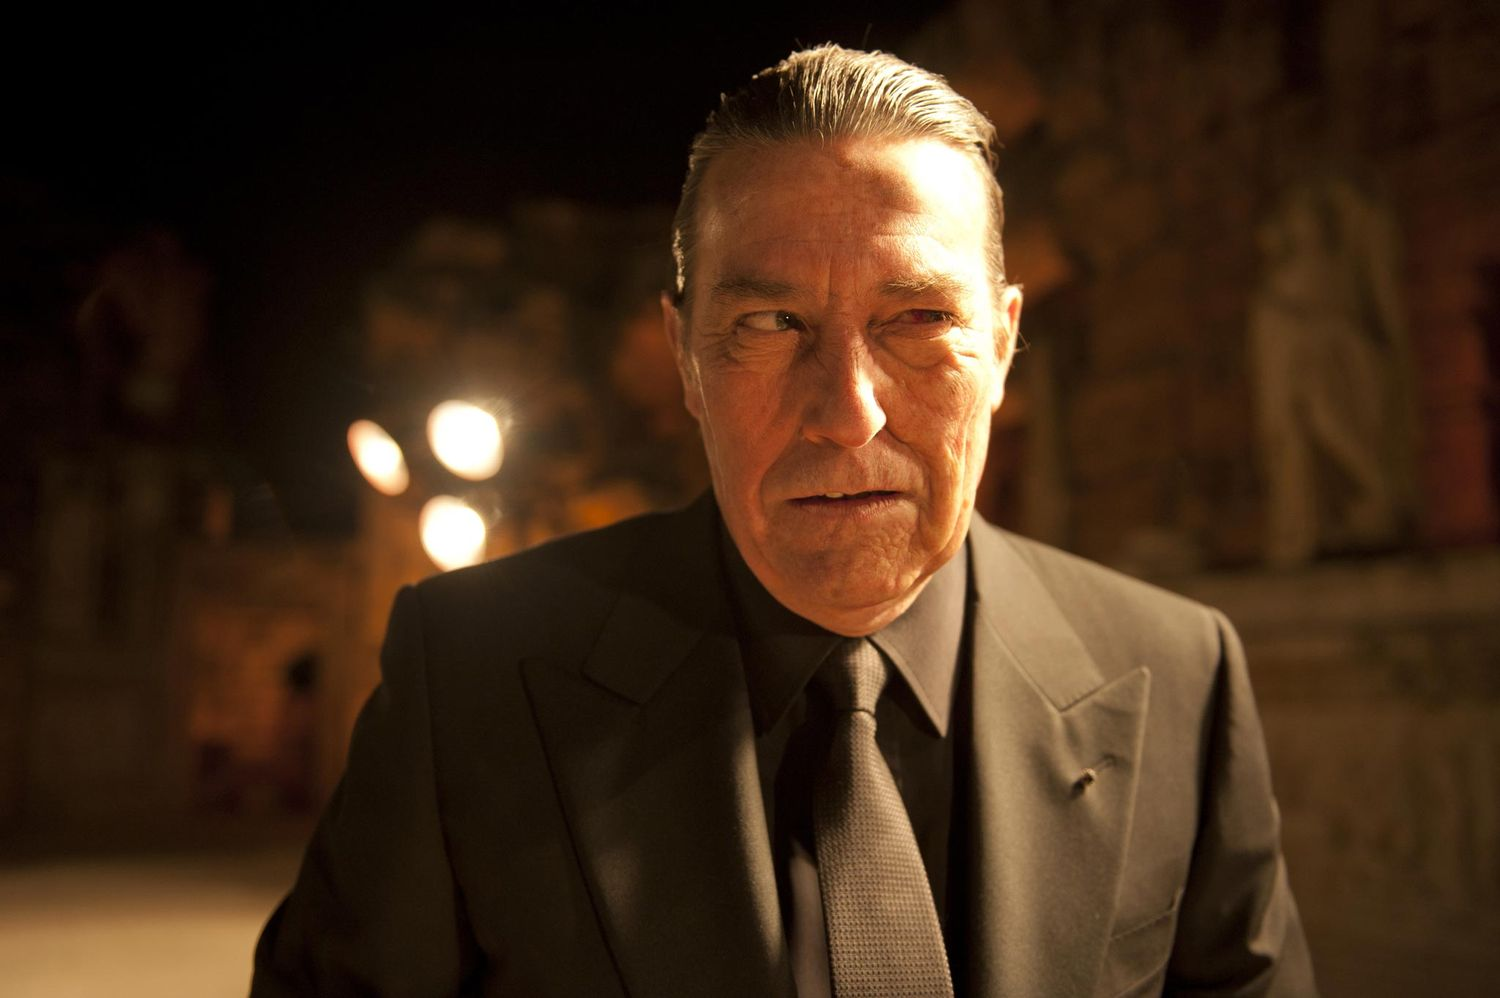 Ciaran Hinds as Roarke in Ghost Rider: Spirit of Vengeance (2012)